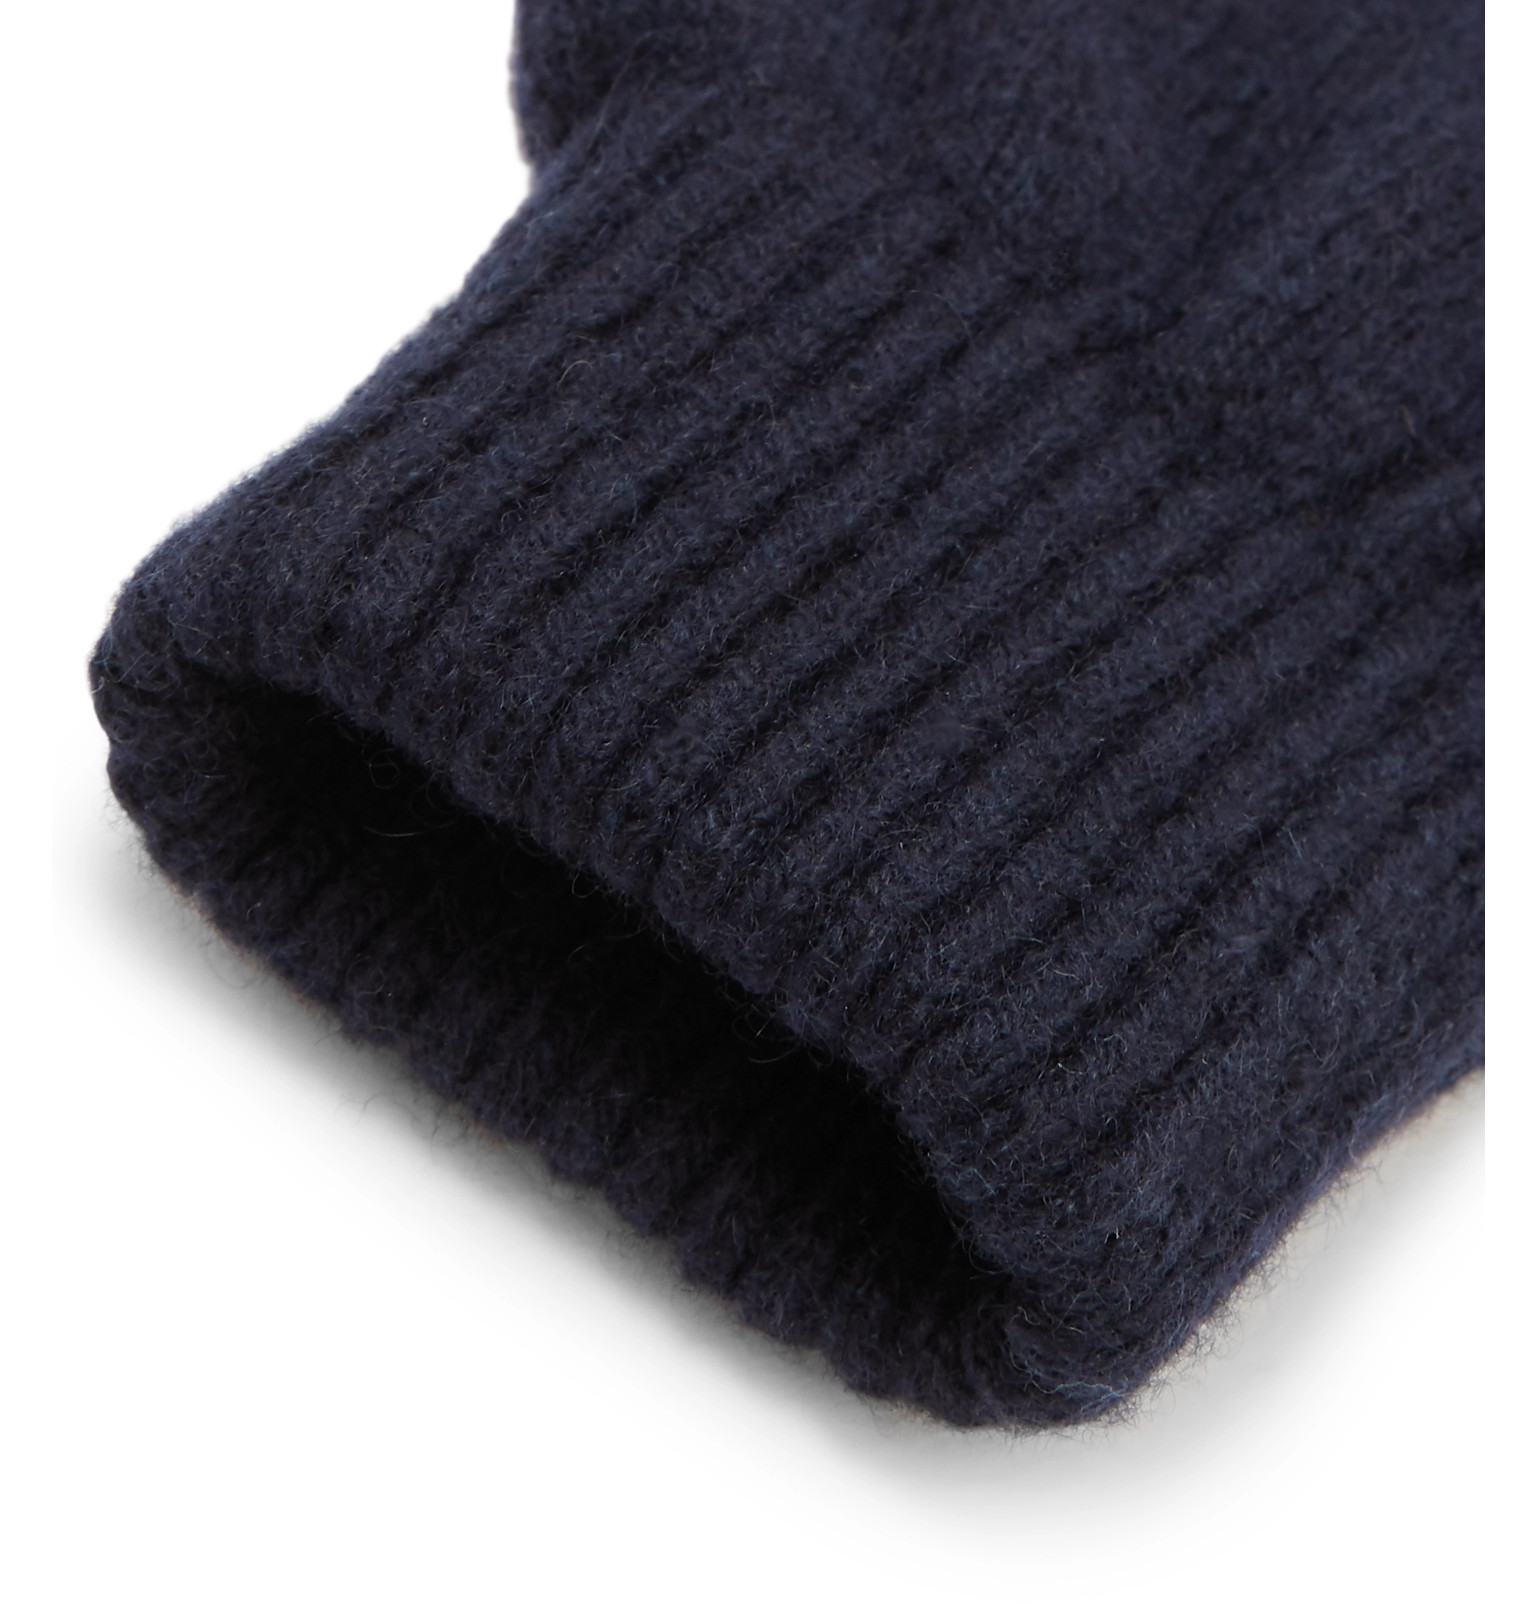 ae04ab5ebcb Paul Smith - Cashmere and Merino Wool-Blend Gloves